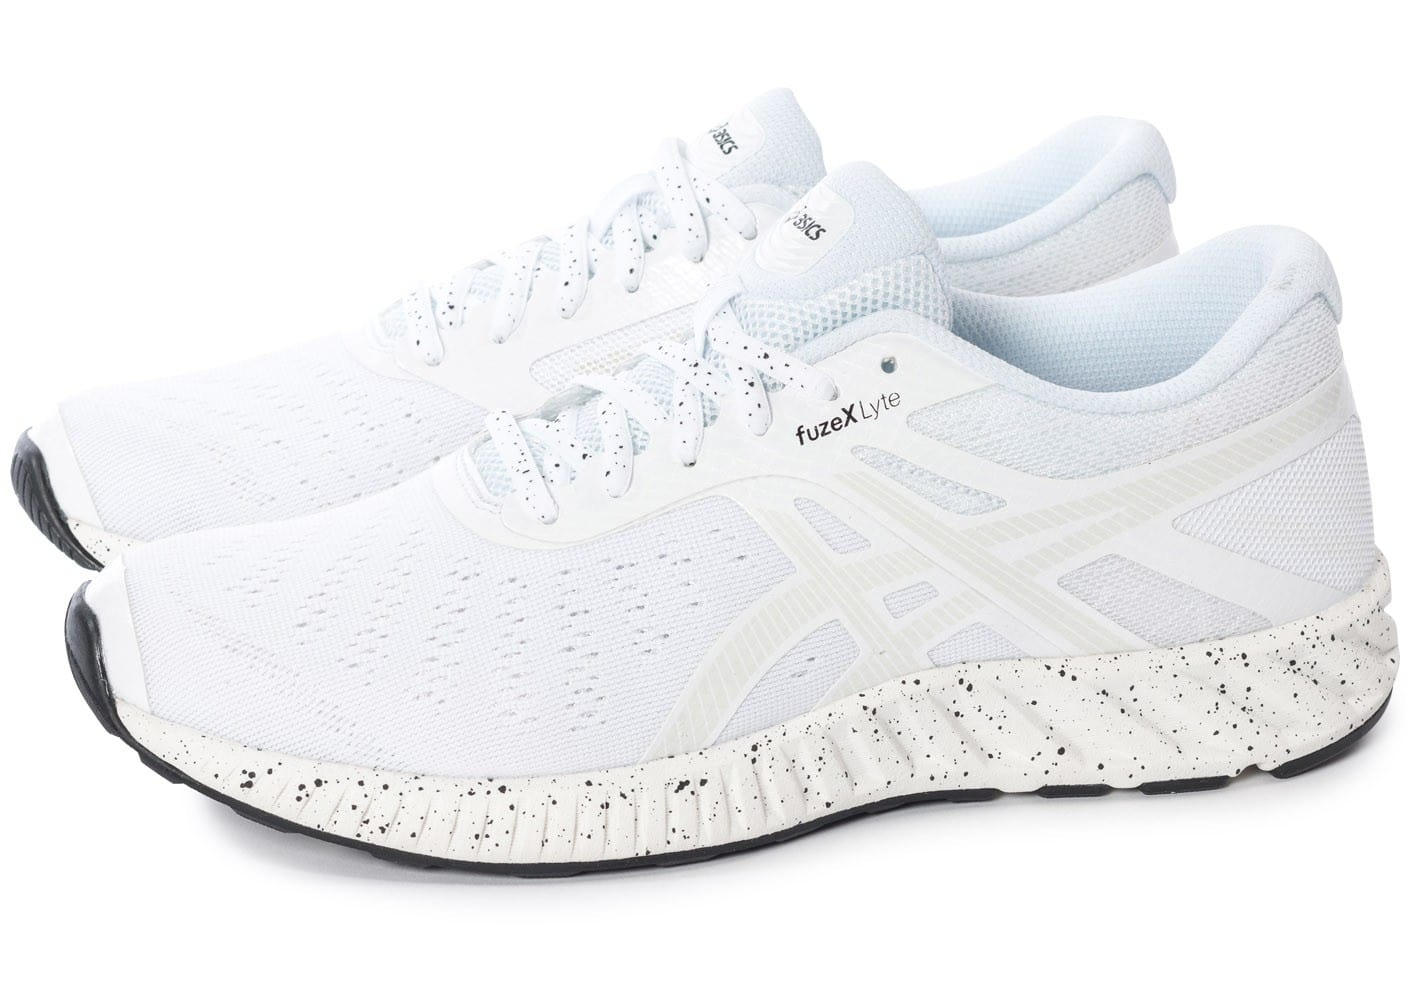 Chaussures Shoot marron femme  Farbe grau Chaussures Asics FuzeX blanches Fashion homme pw4Taz